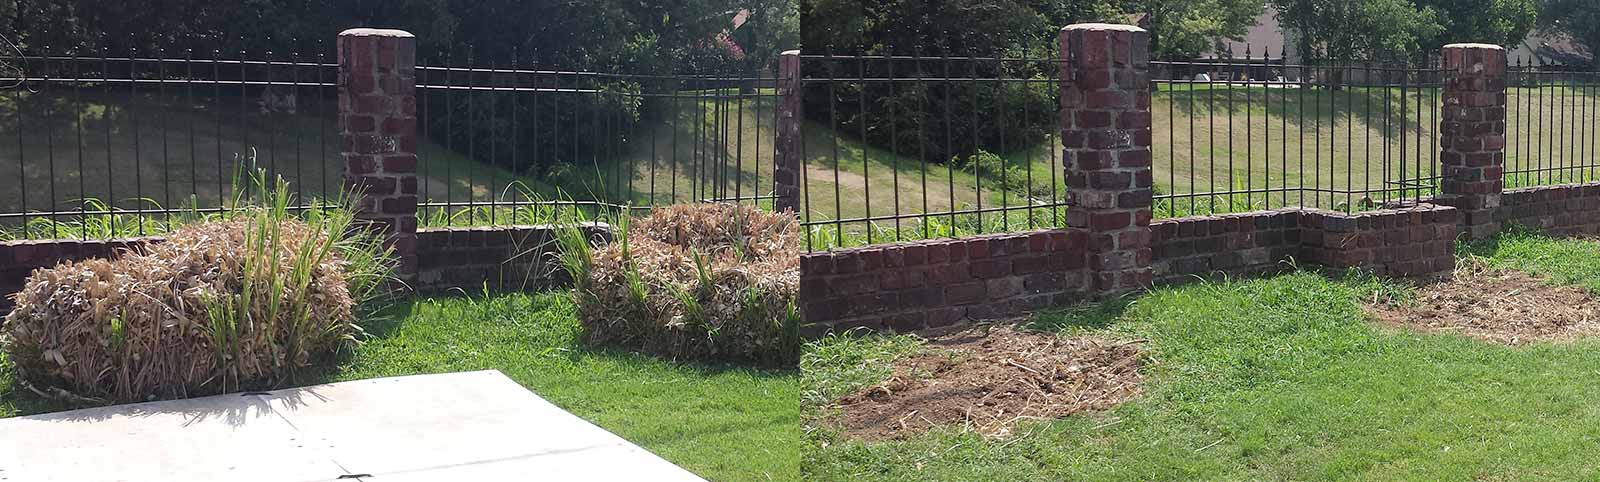 Ornamental Bush Removal: Before and After